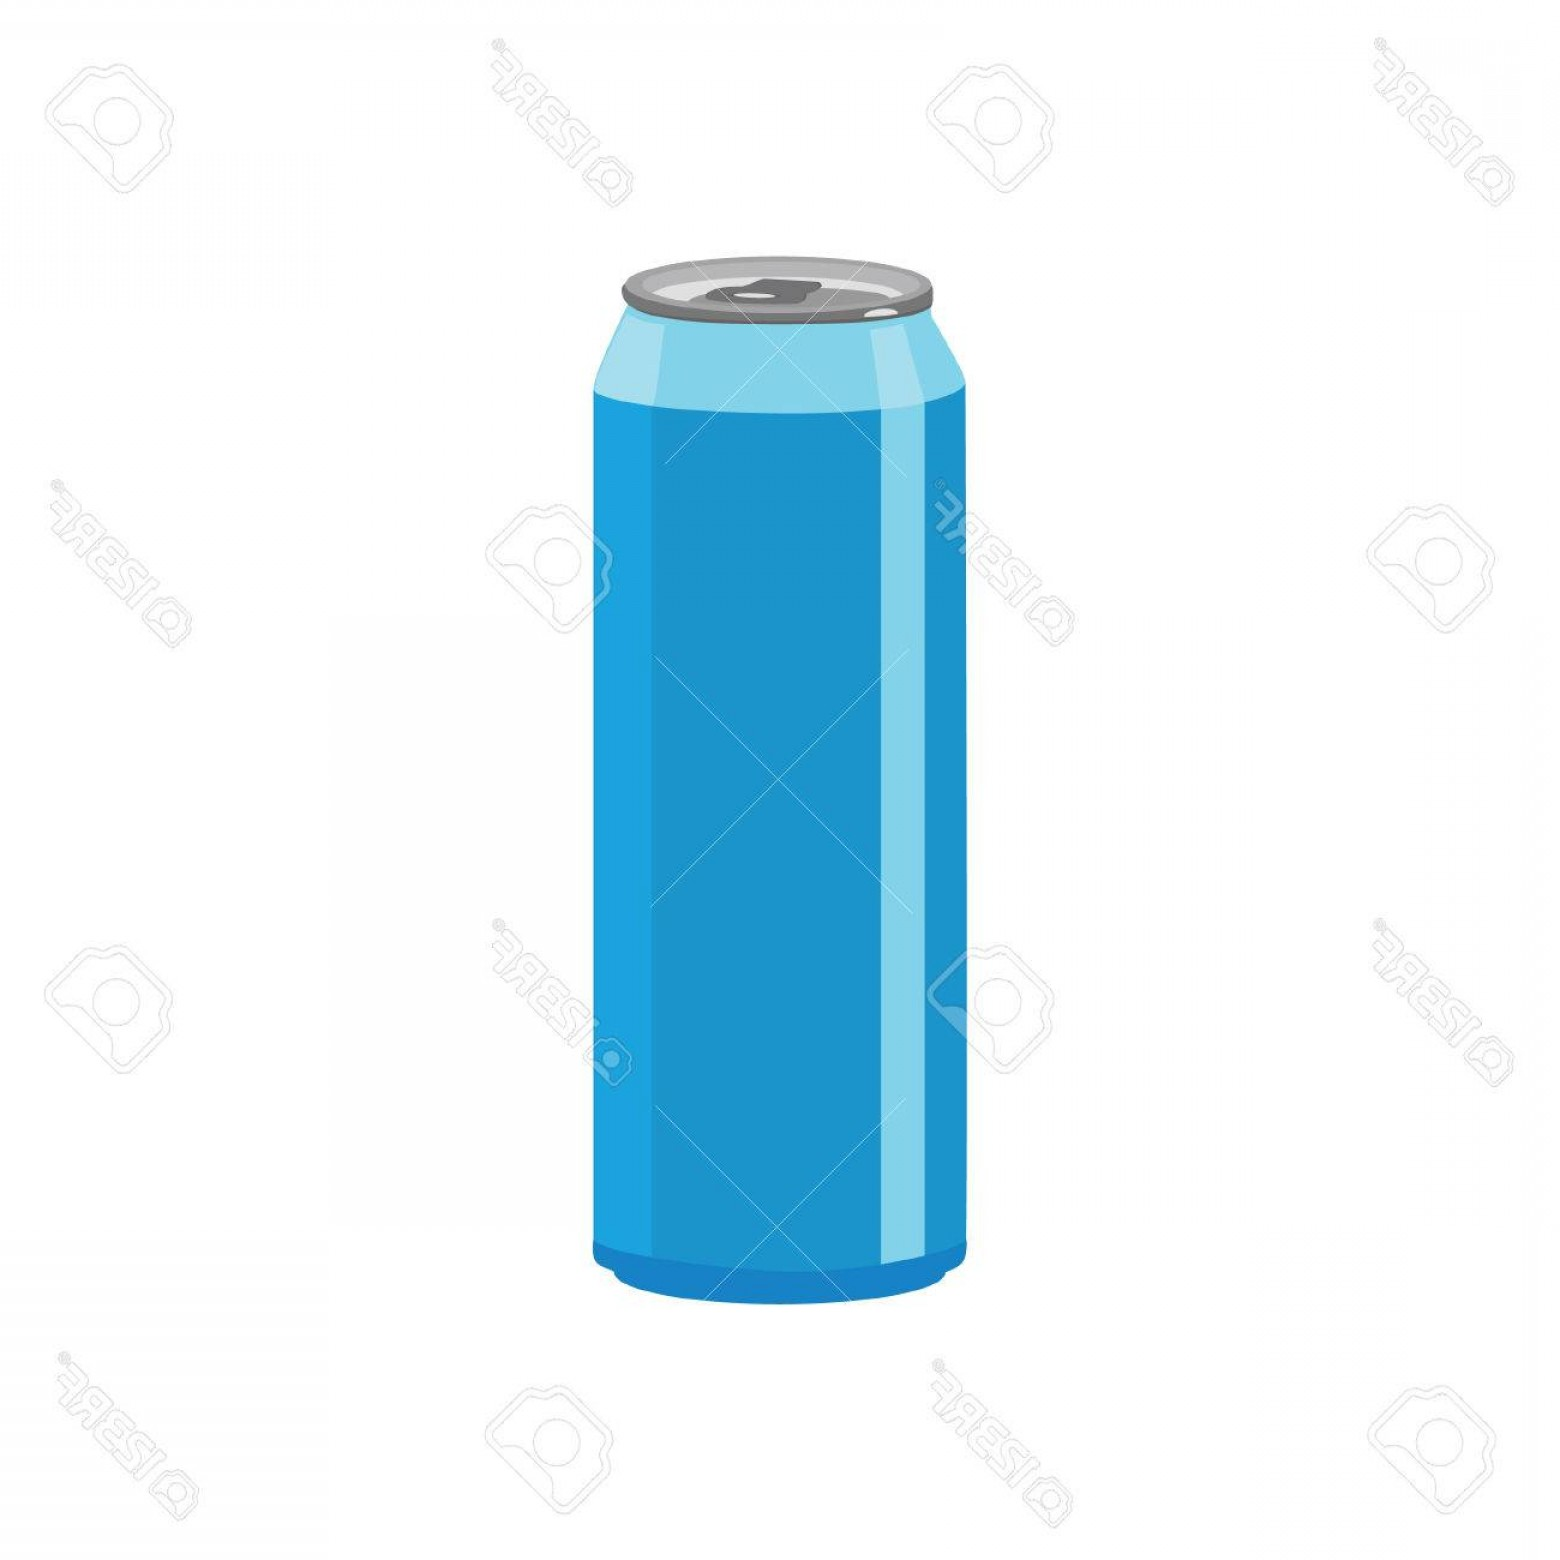 1560x1560 Photostock Vector Illustration Of Aluminum Can Soda Can Beer Can